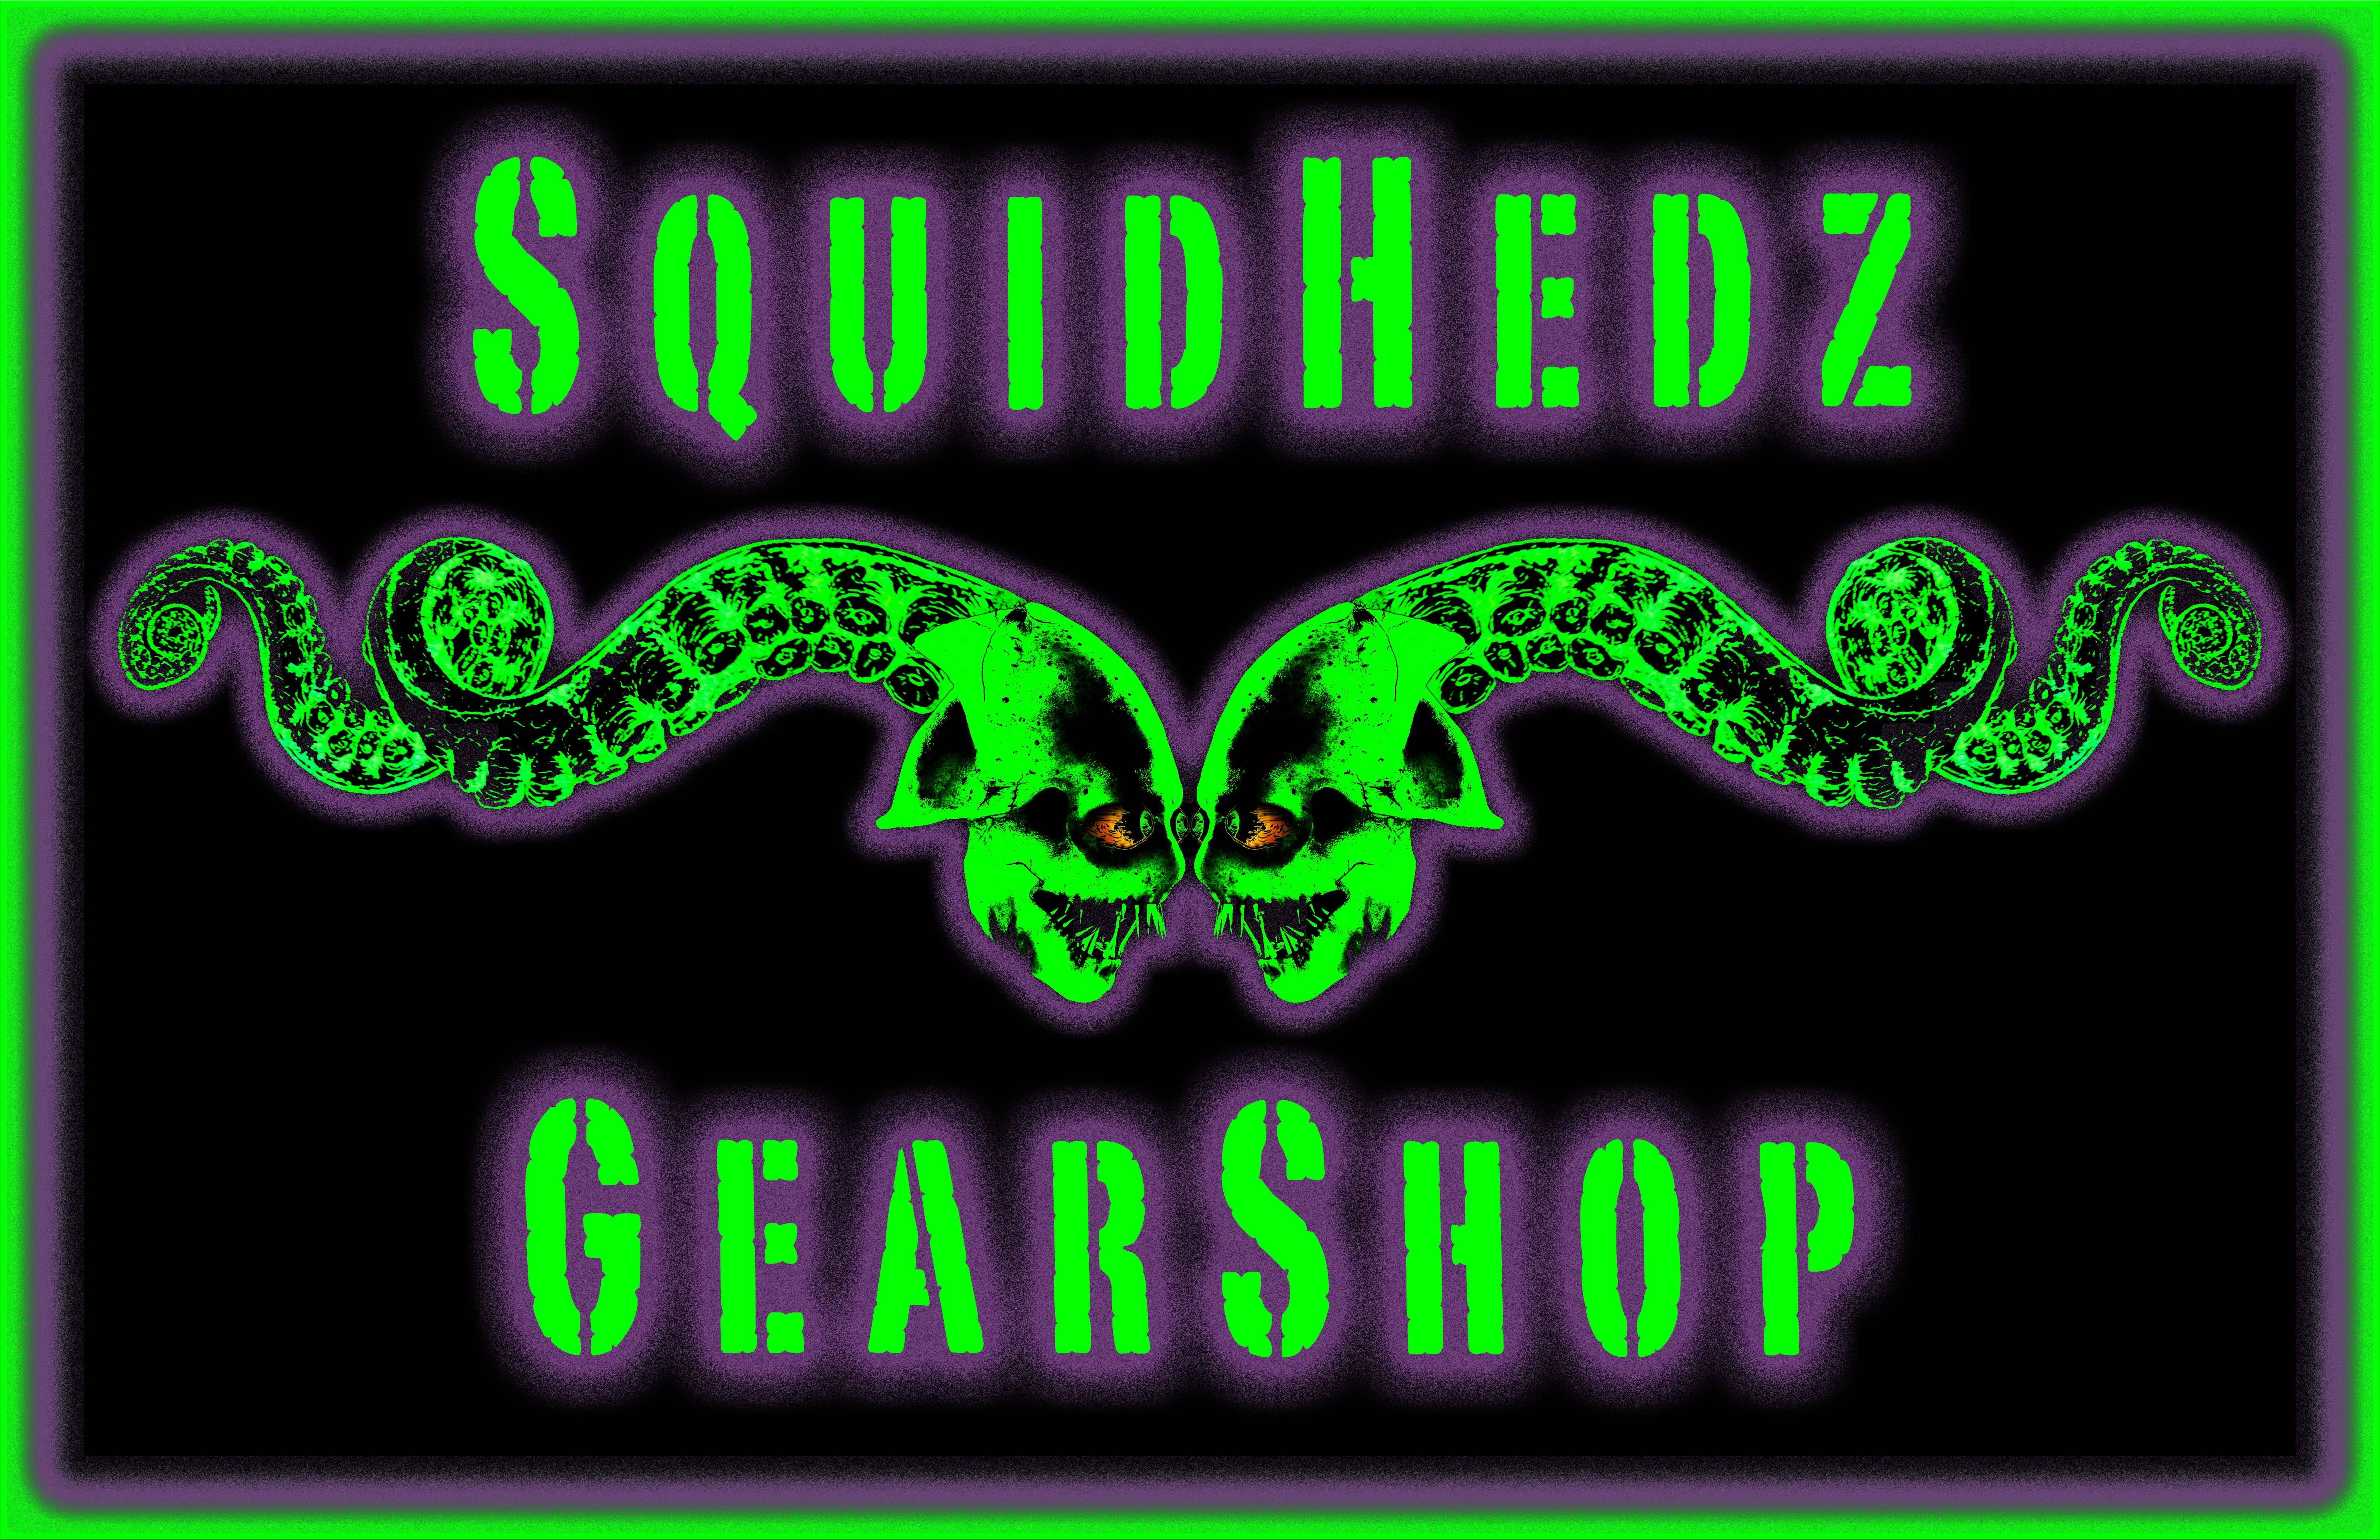 SquidHedz GearShop's account image